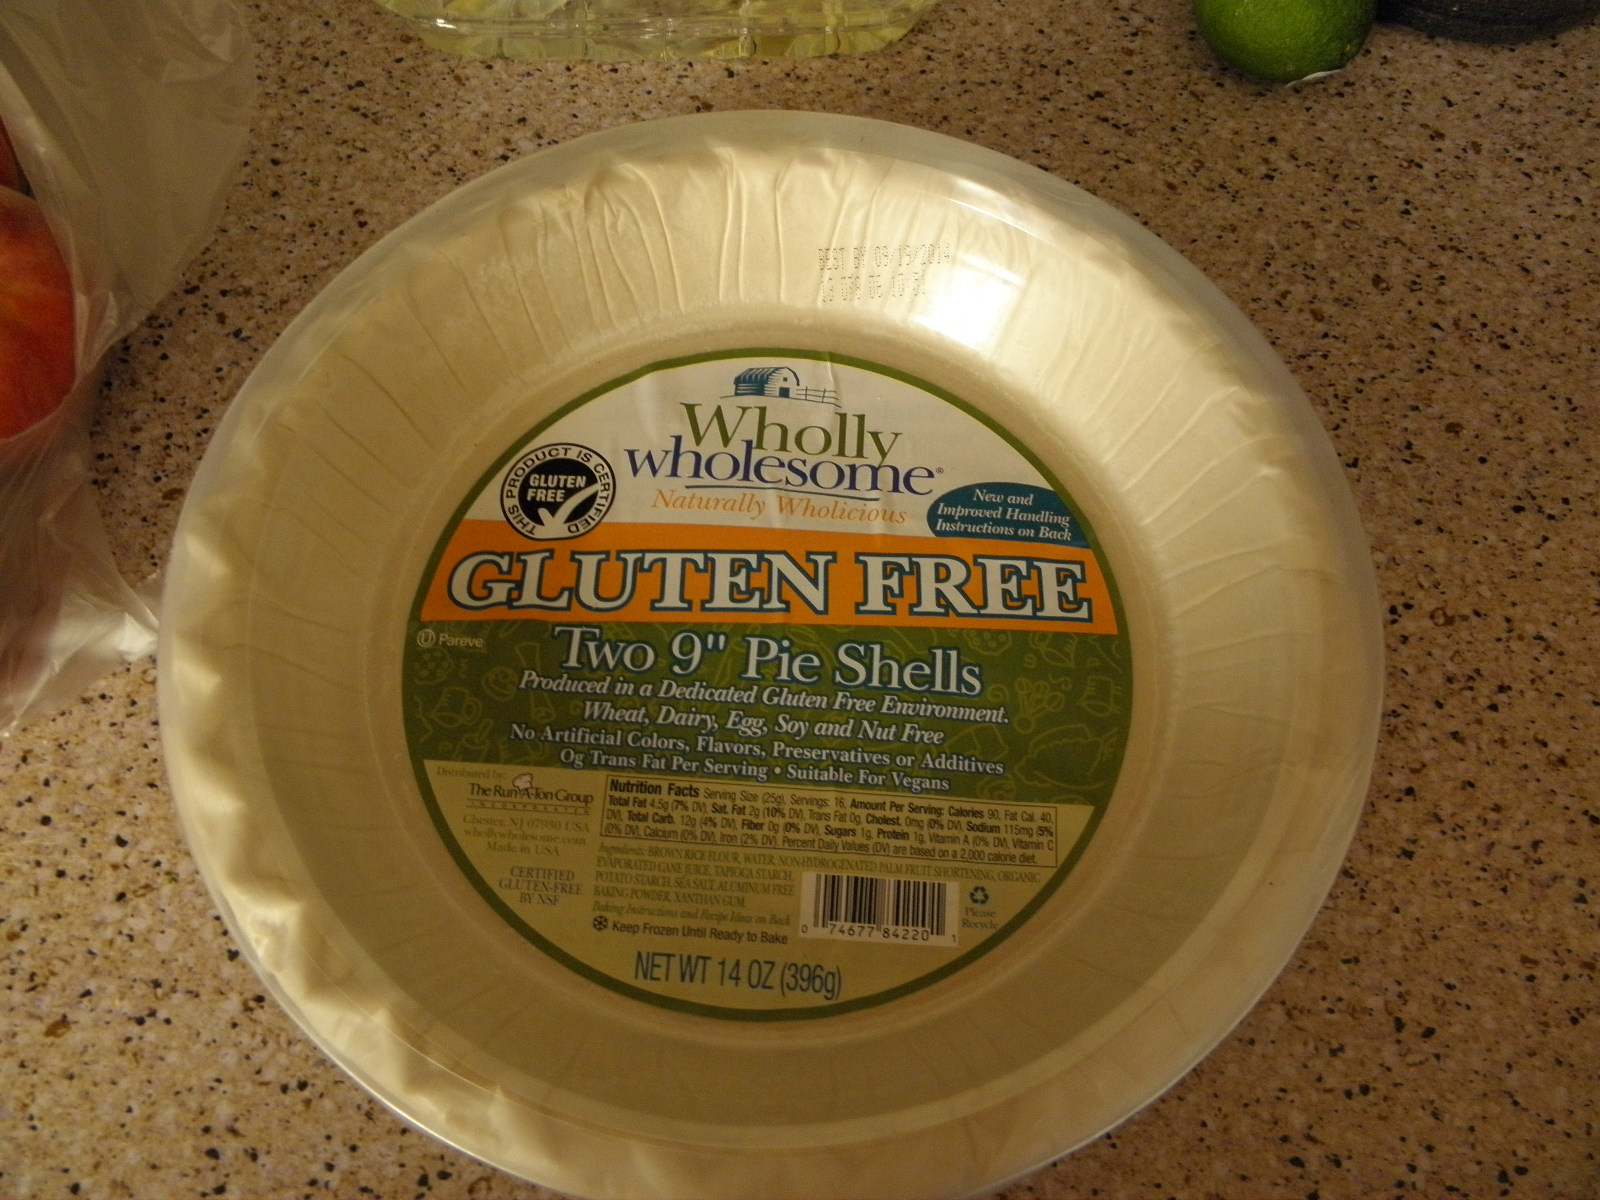 Wholly Wholesome Gluten Free Pie Crust Review Fabgrandma